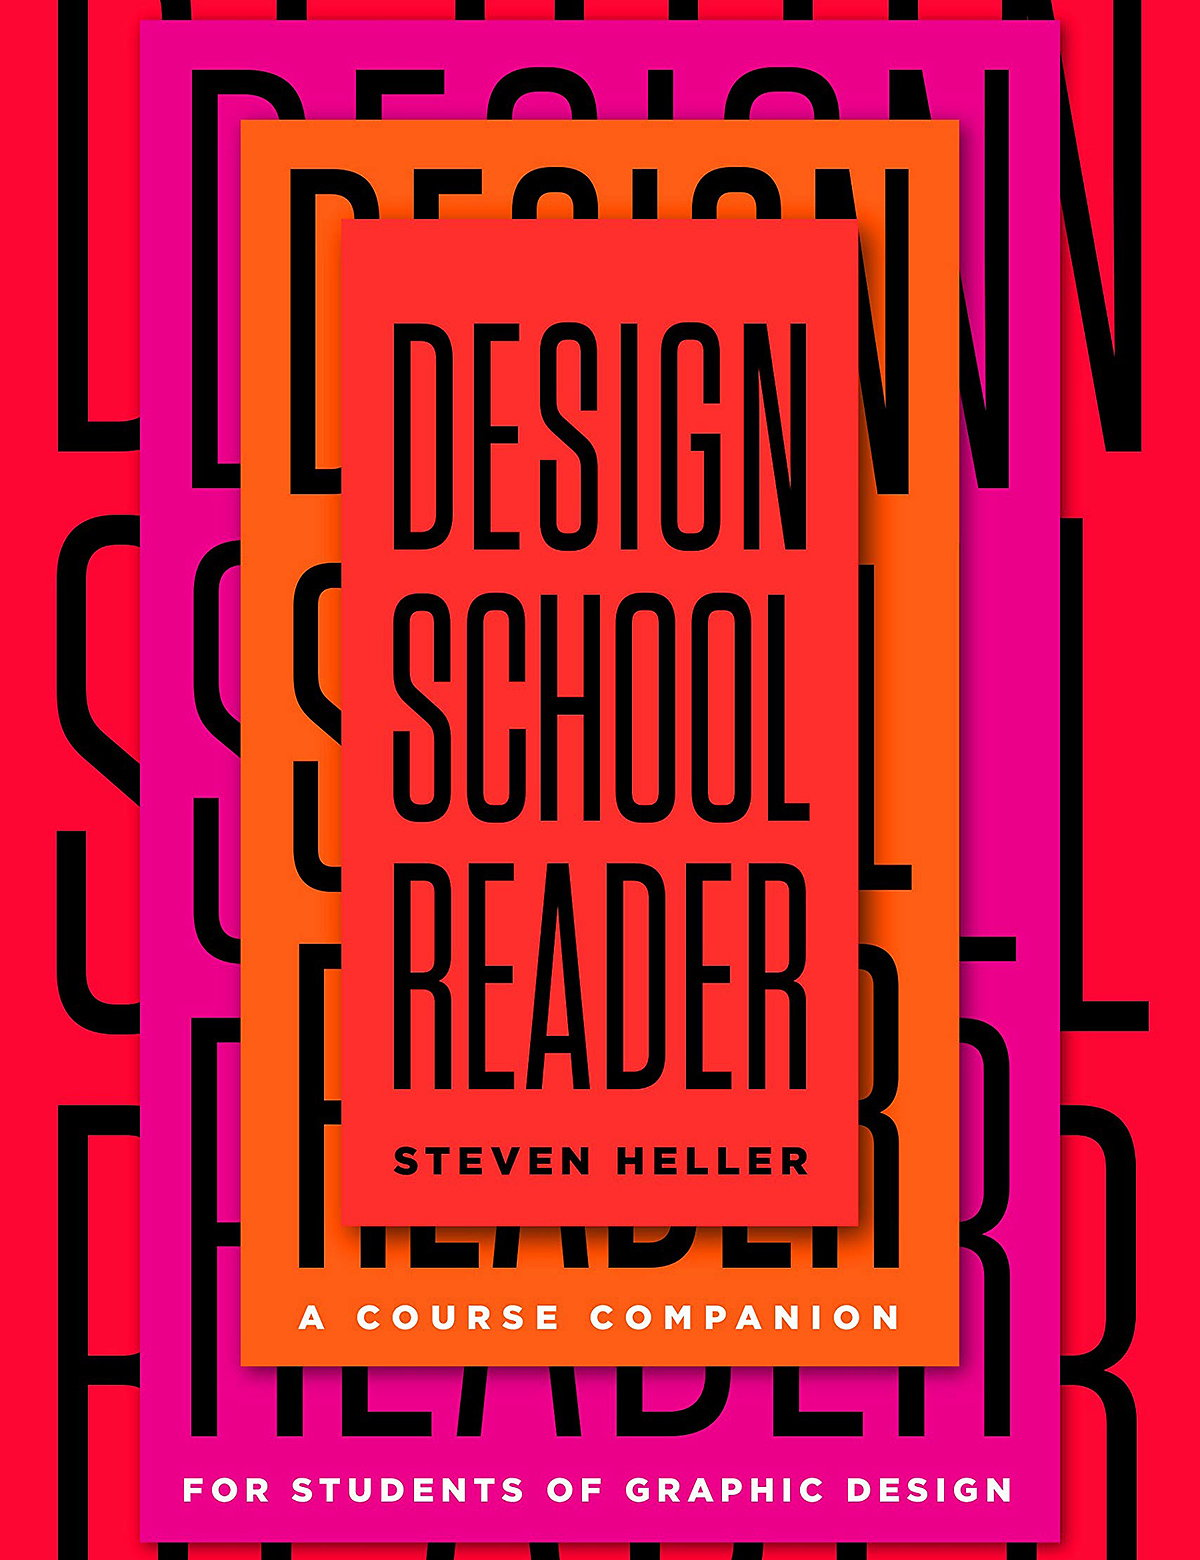 Design School Reader - A Course Companion for Students of Graphic Design